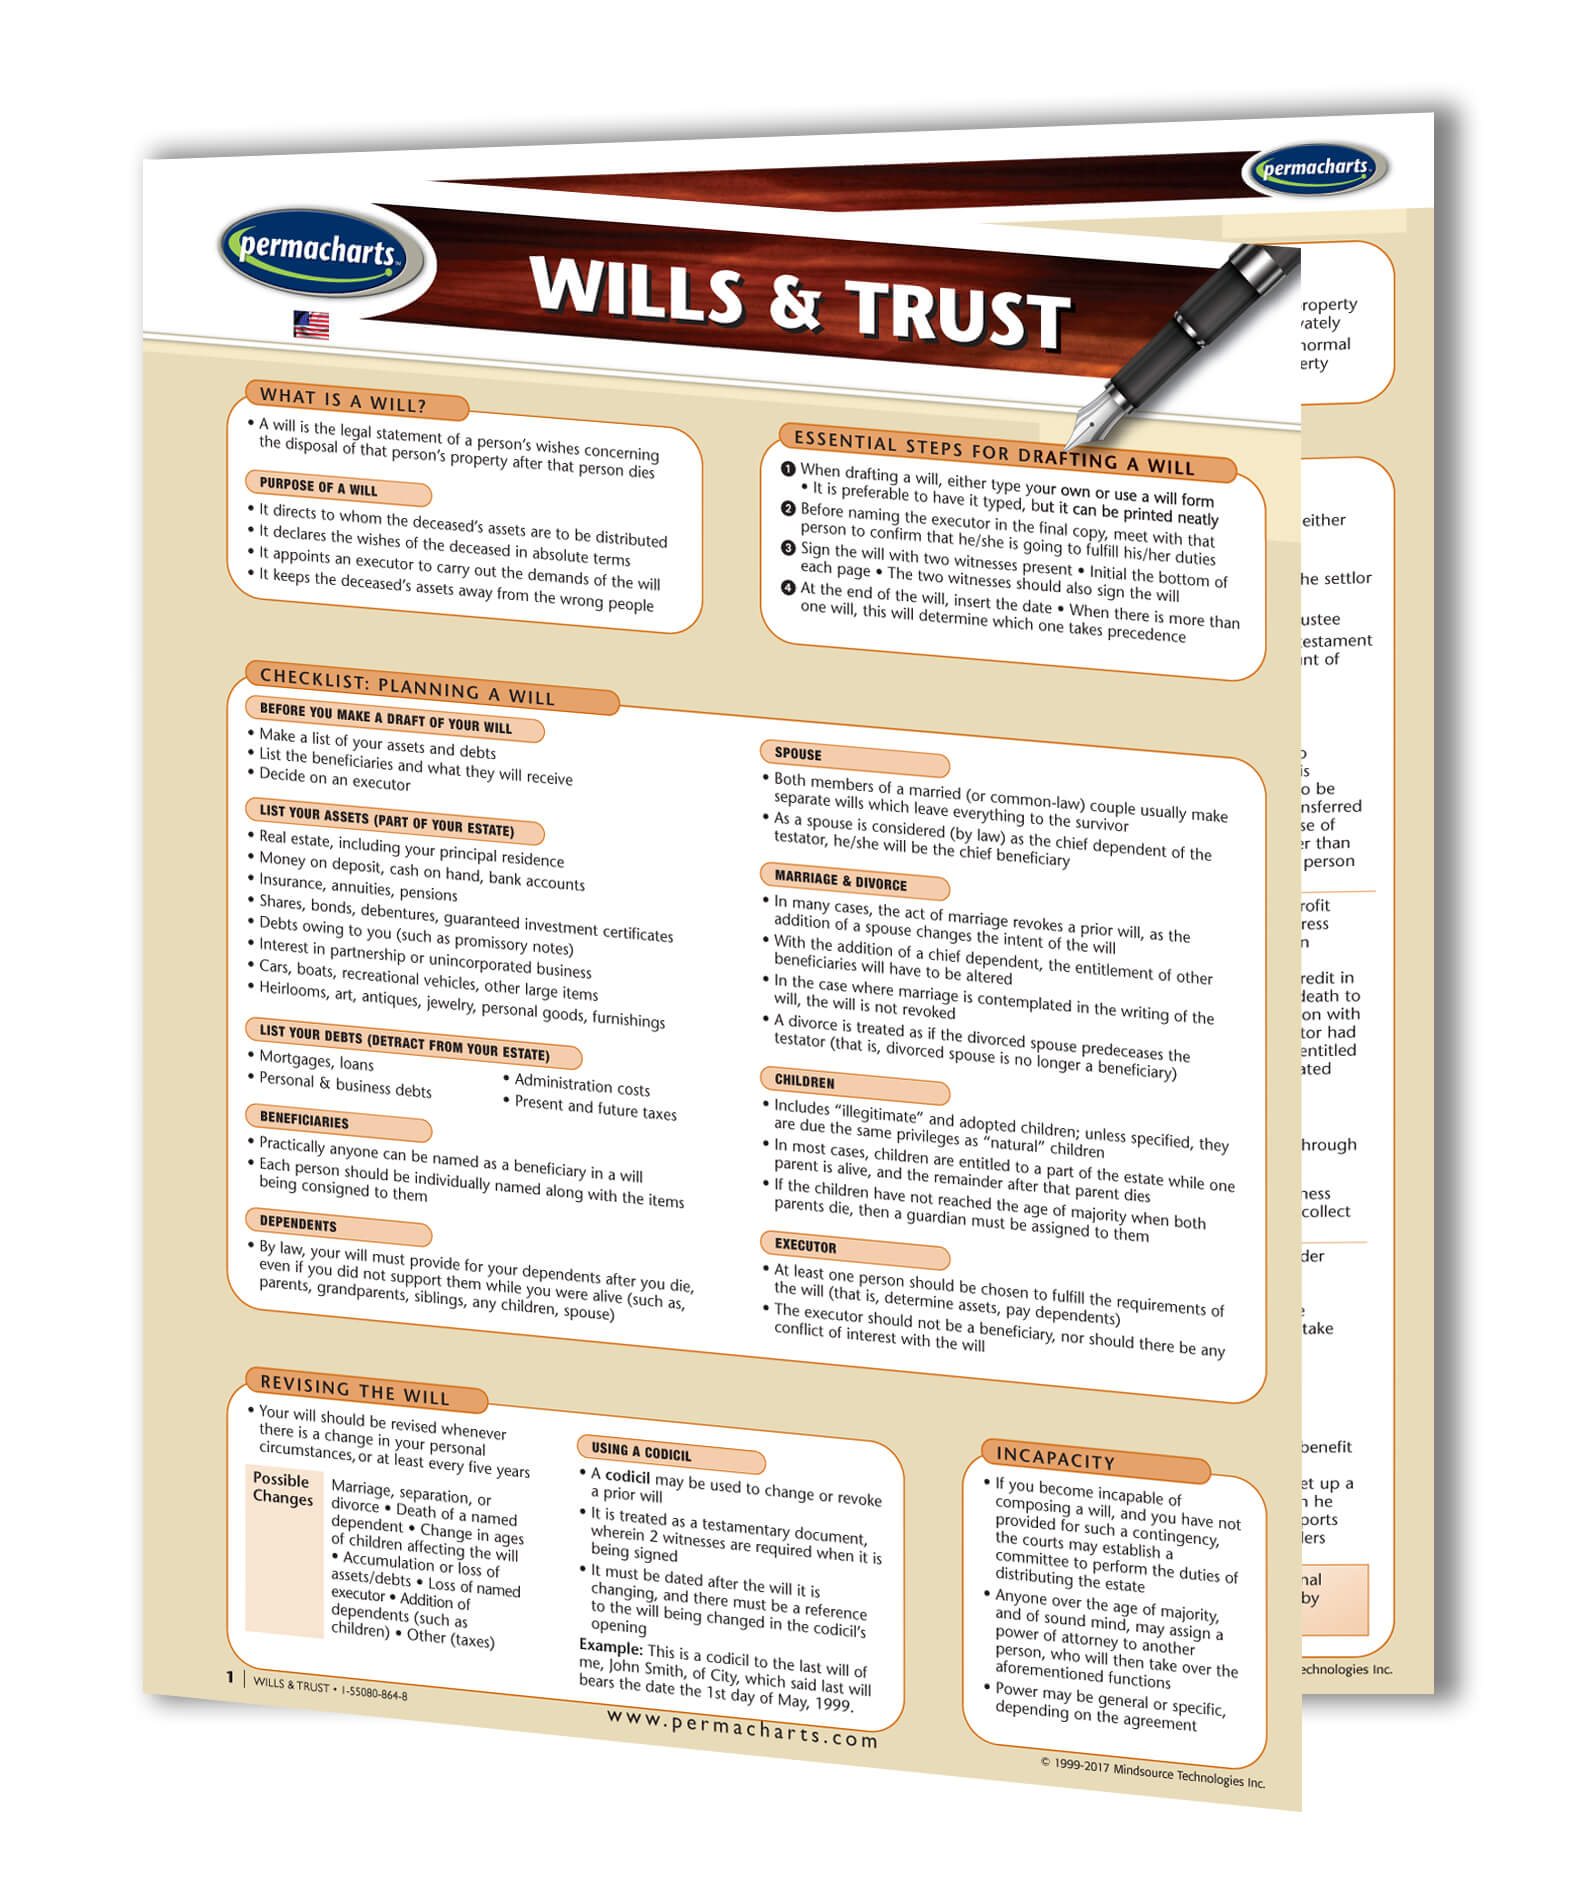 formalities of wills study notes This practice note explains how to execute wills and codicils it covers the standard formalities, who can be a witness, how to deal with defects in execution, duties of professional advisers in relation to execution, and what the formalities are in less common cases and when there is an international element.